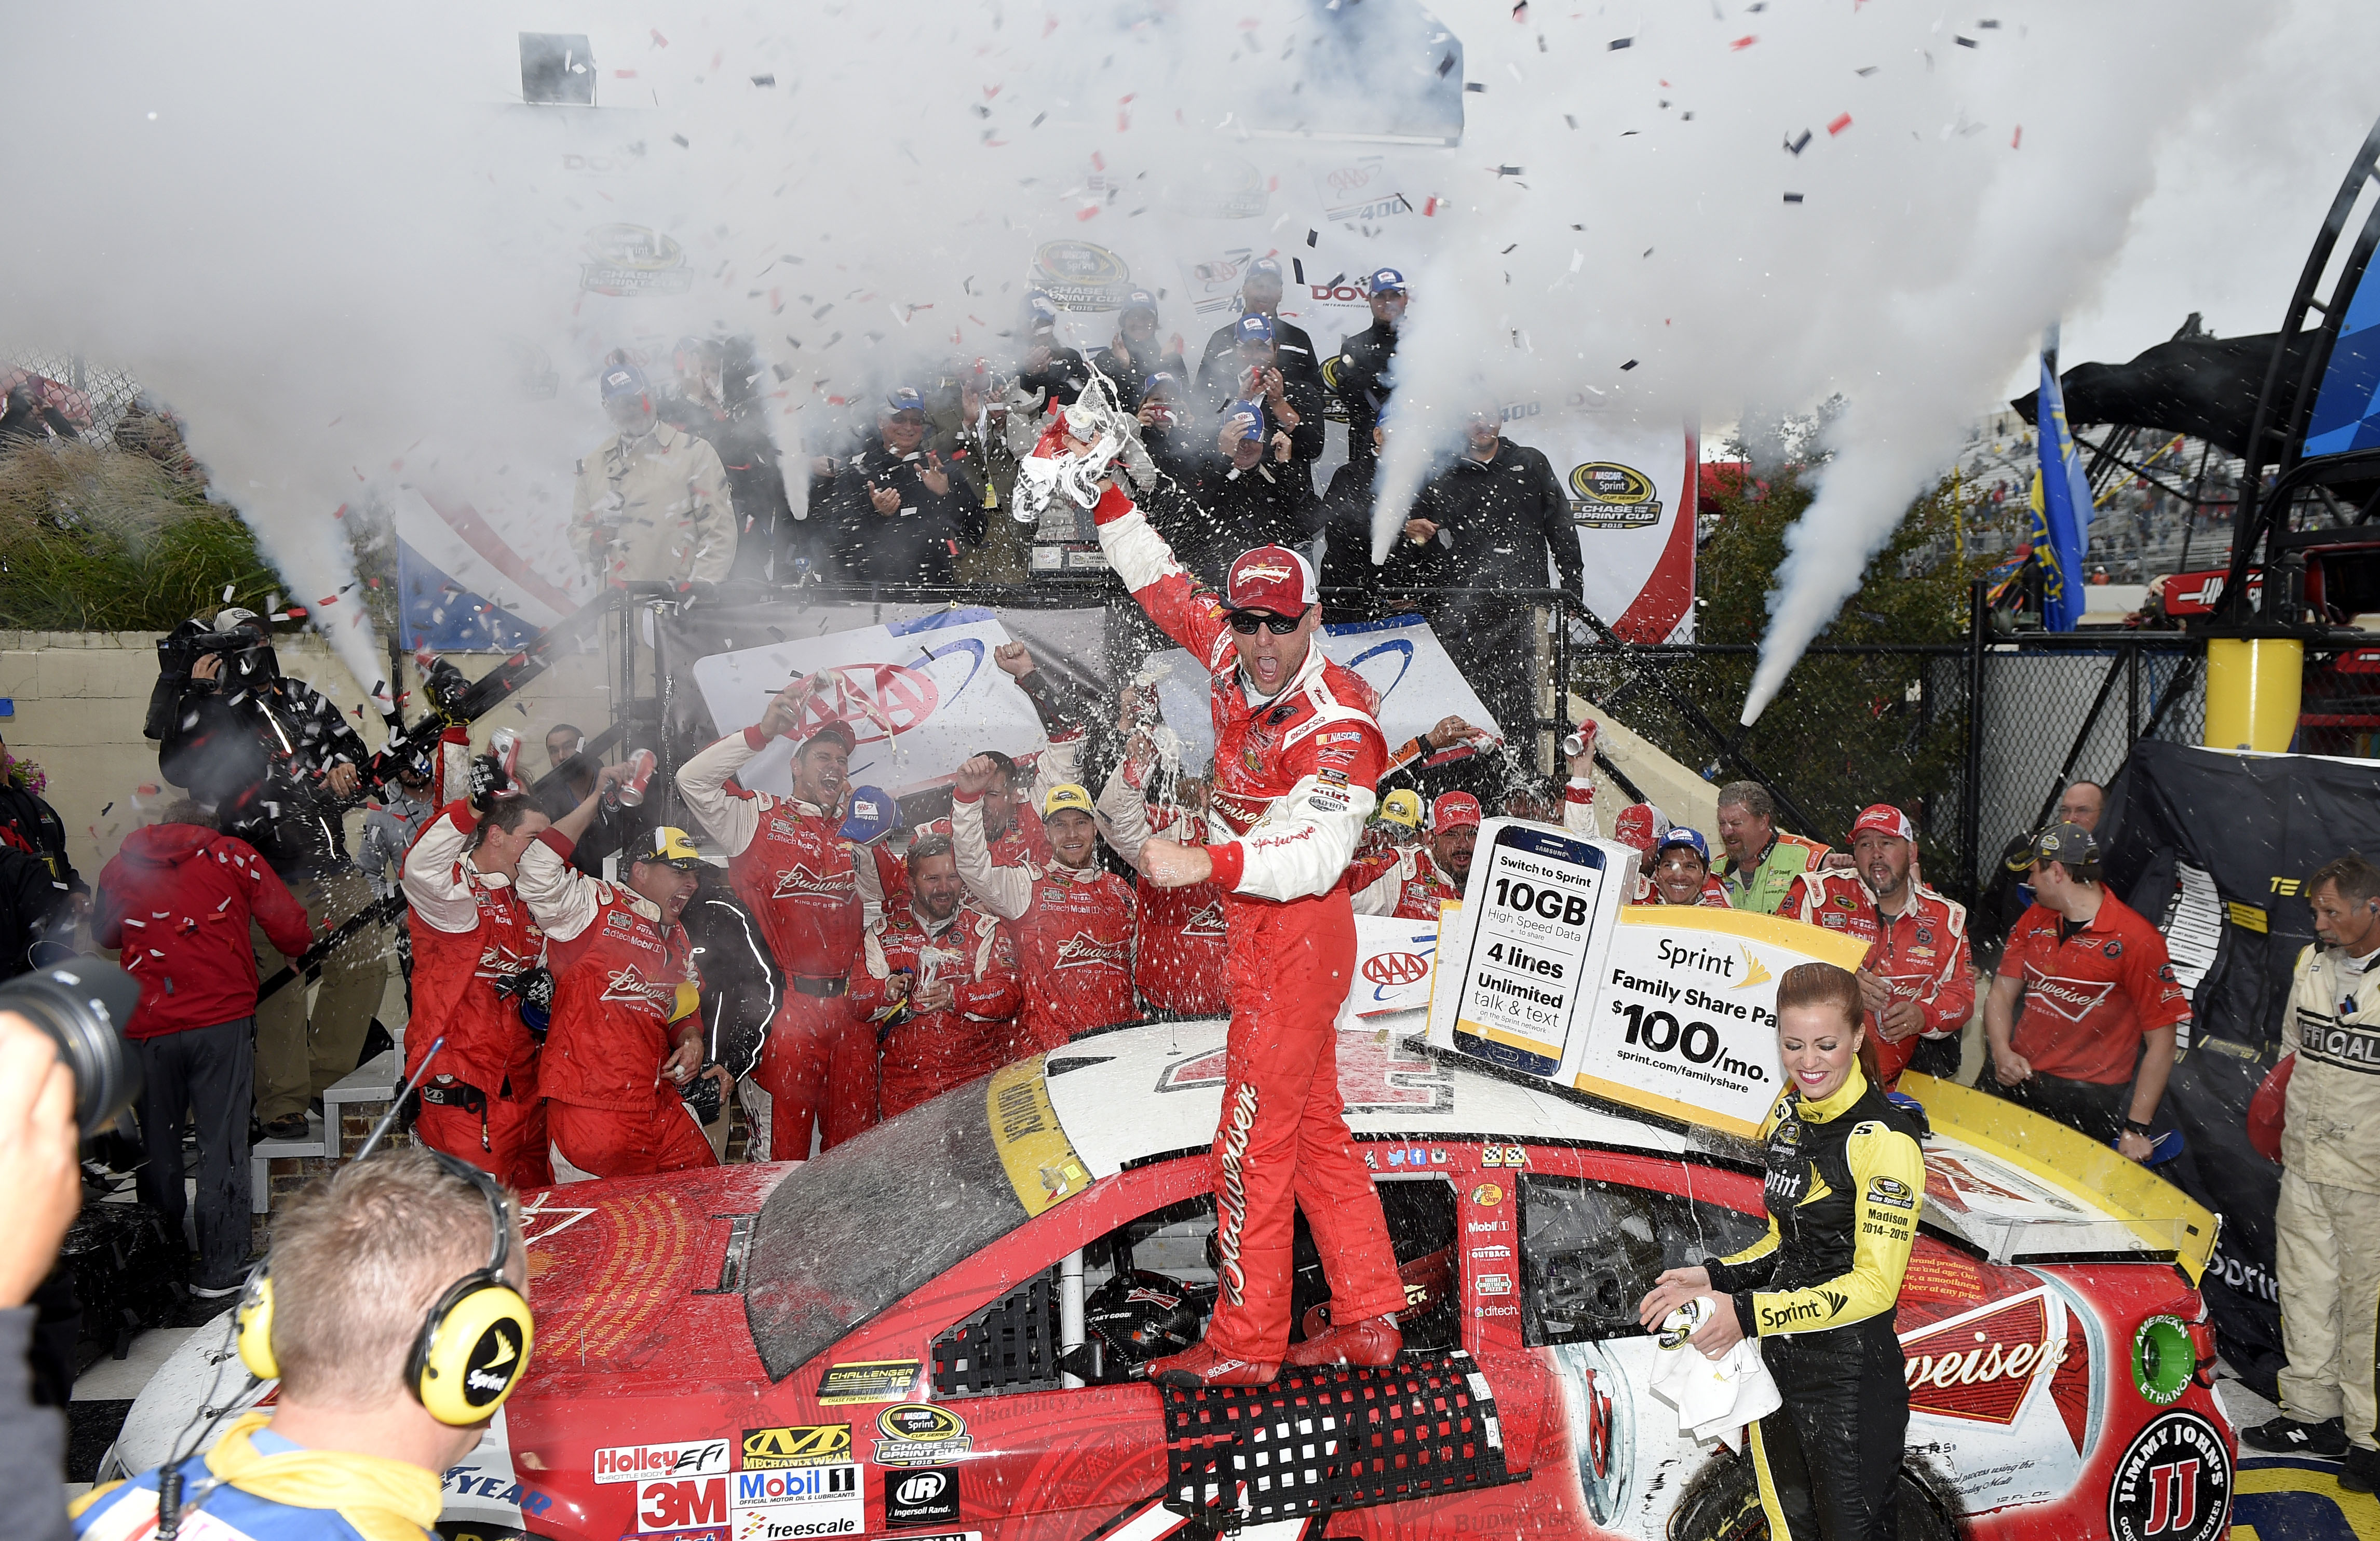 Kevin Harvick celebrates in Victory Lane after he won the NASCAR Sprint Cup series auto race, Sunday, Oct. 4, 2015, at Dover International Speedway in Dover, Del. (AP Photo/Nick Wass)